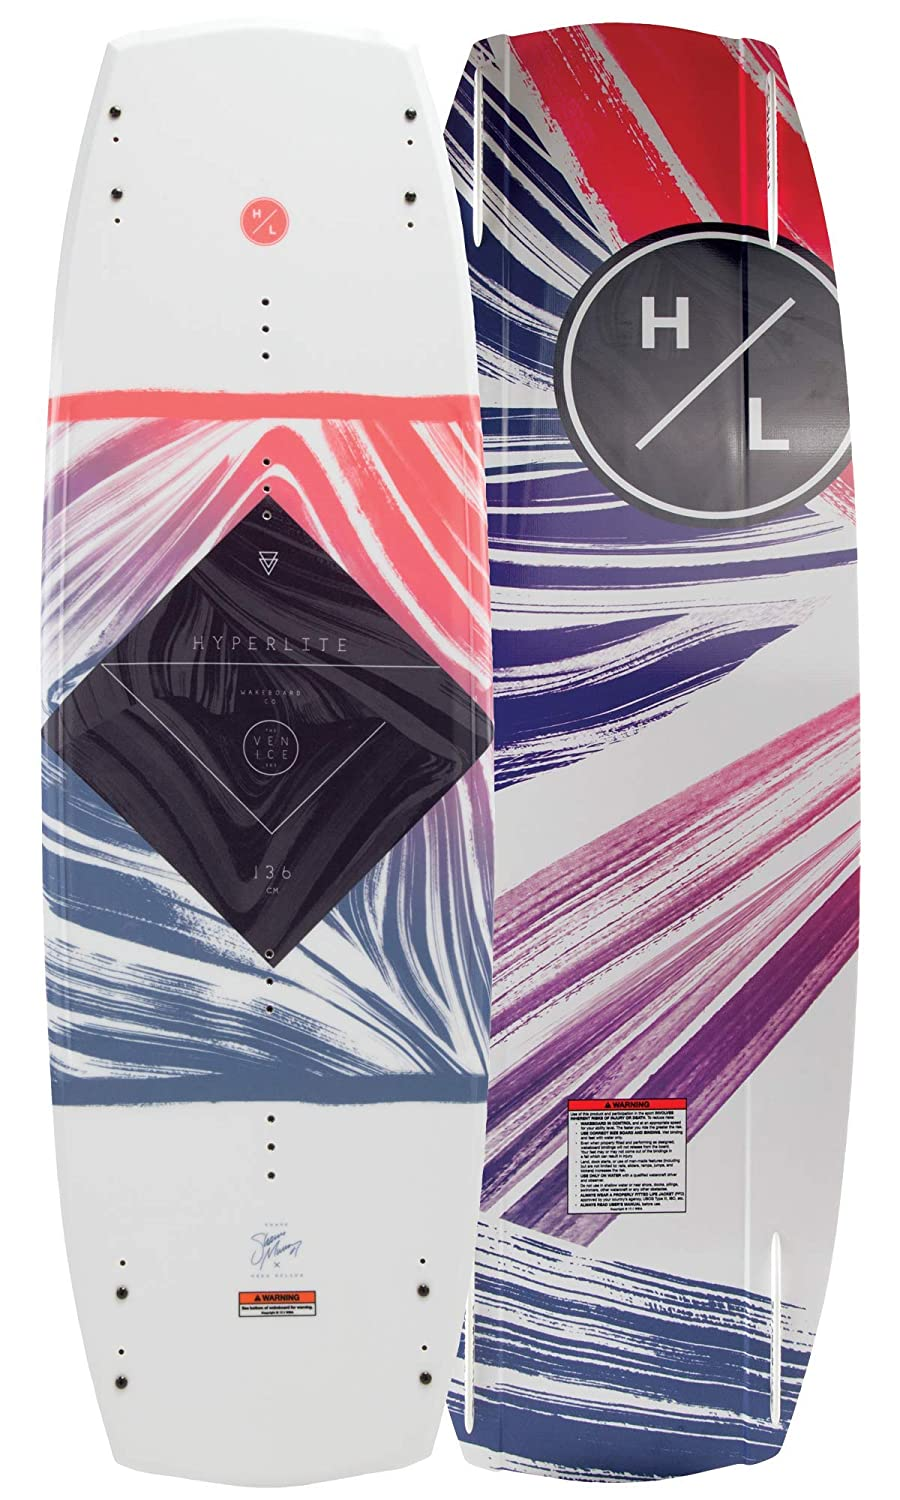 Hyperlite Venice Wakeboard 2019 B0064G1EVI Wakeboards Wakeboards Wakeboards Der neueste Stil 0323a4